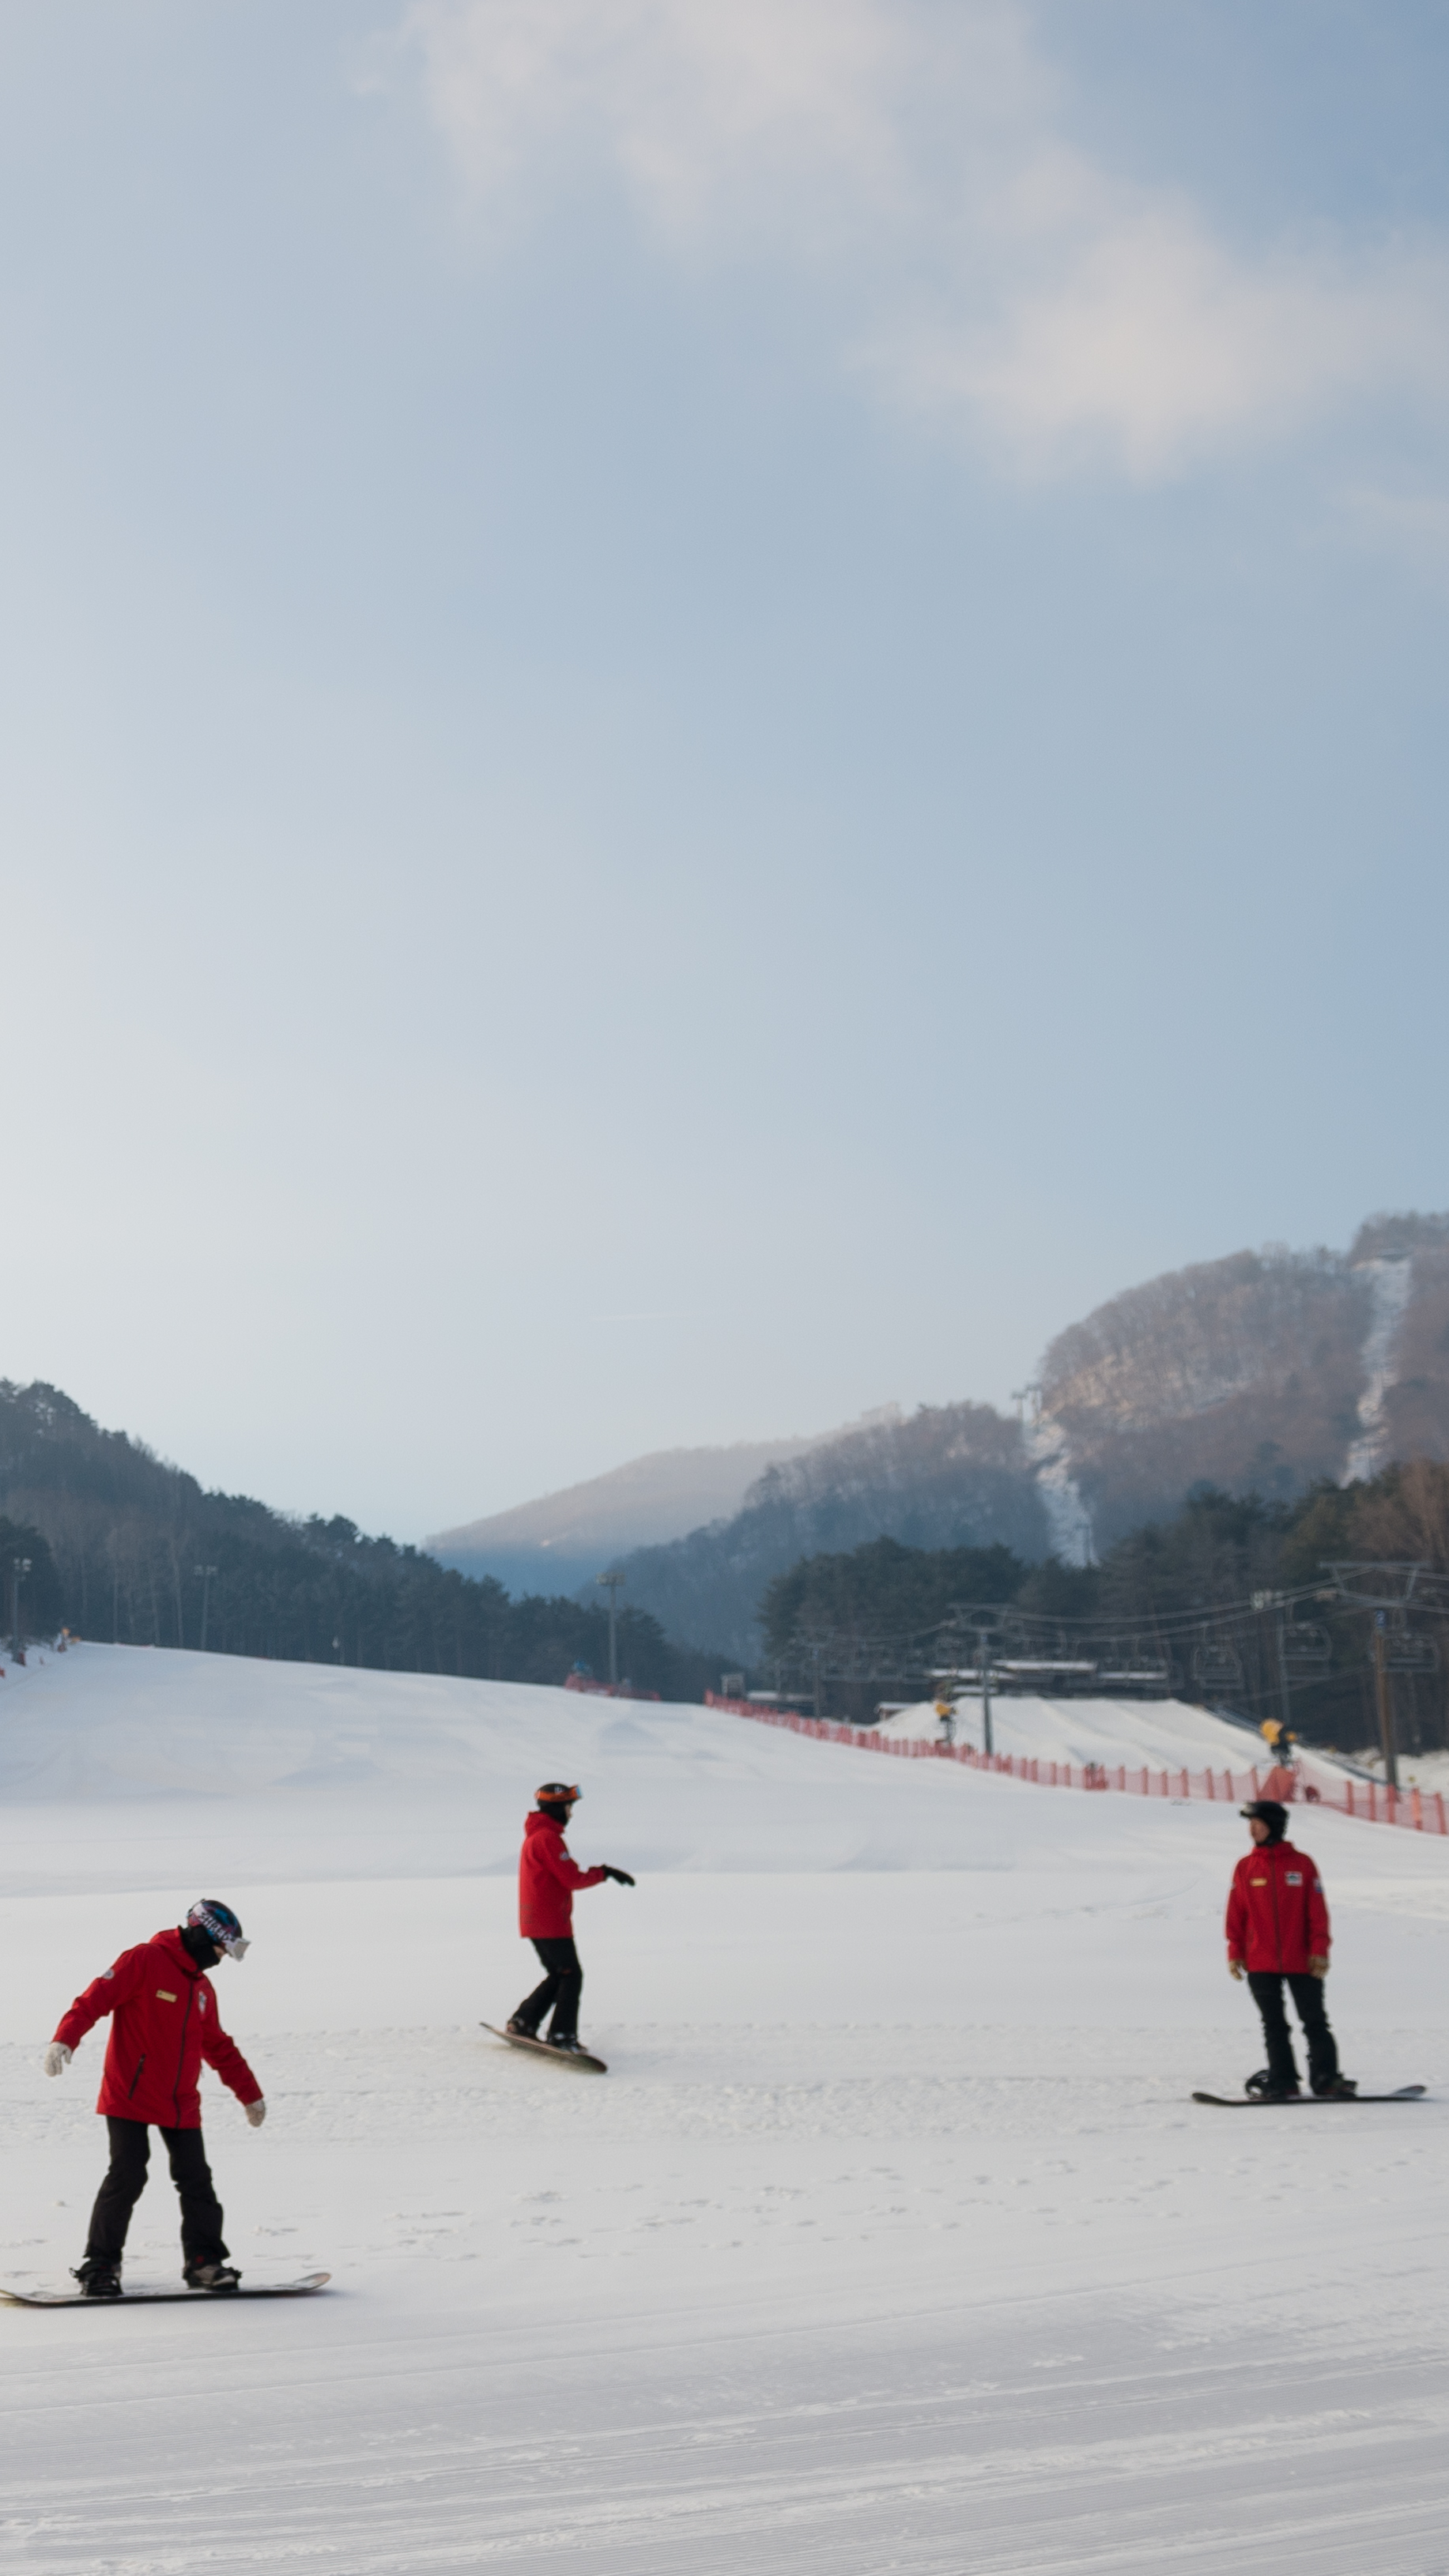 Snowboard instructors set out for their shift at Yongpyong Ski Resort.